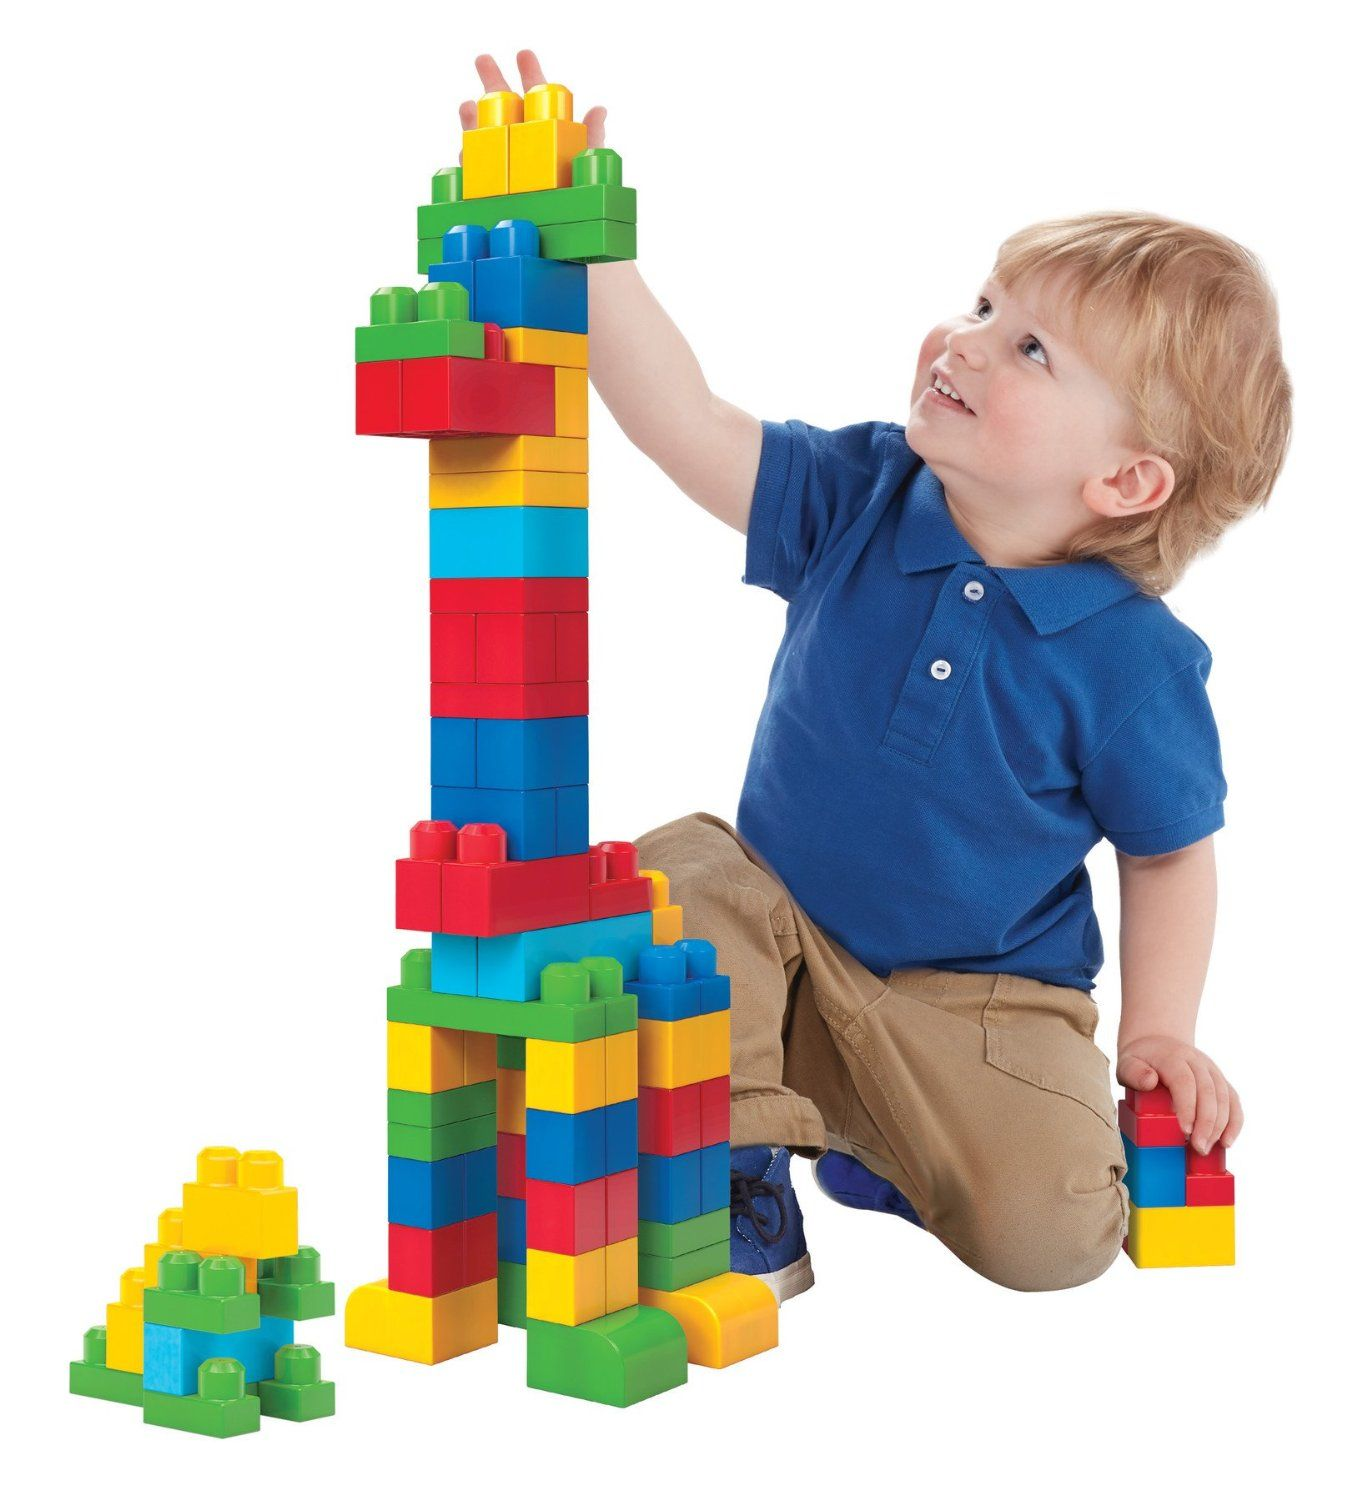 Building Toys For Babies : There are a few pictures of children playing with blocks